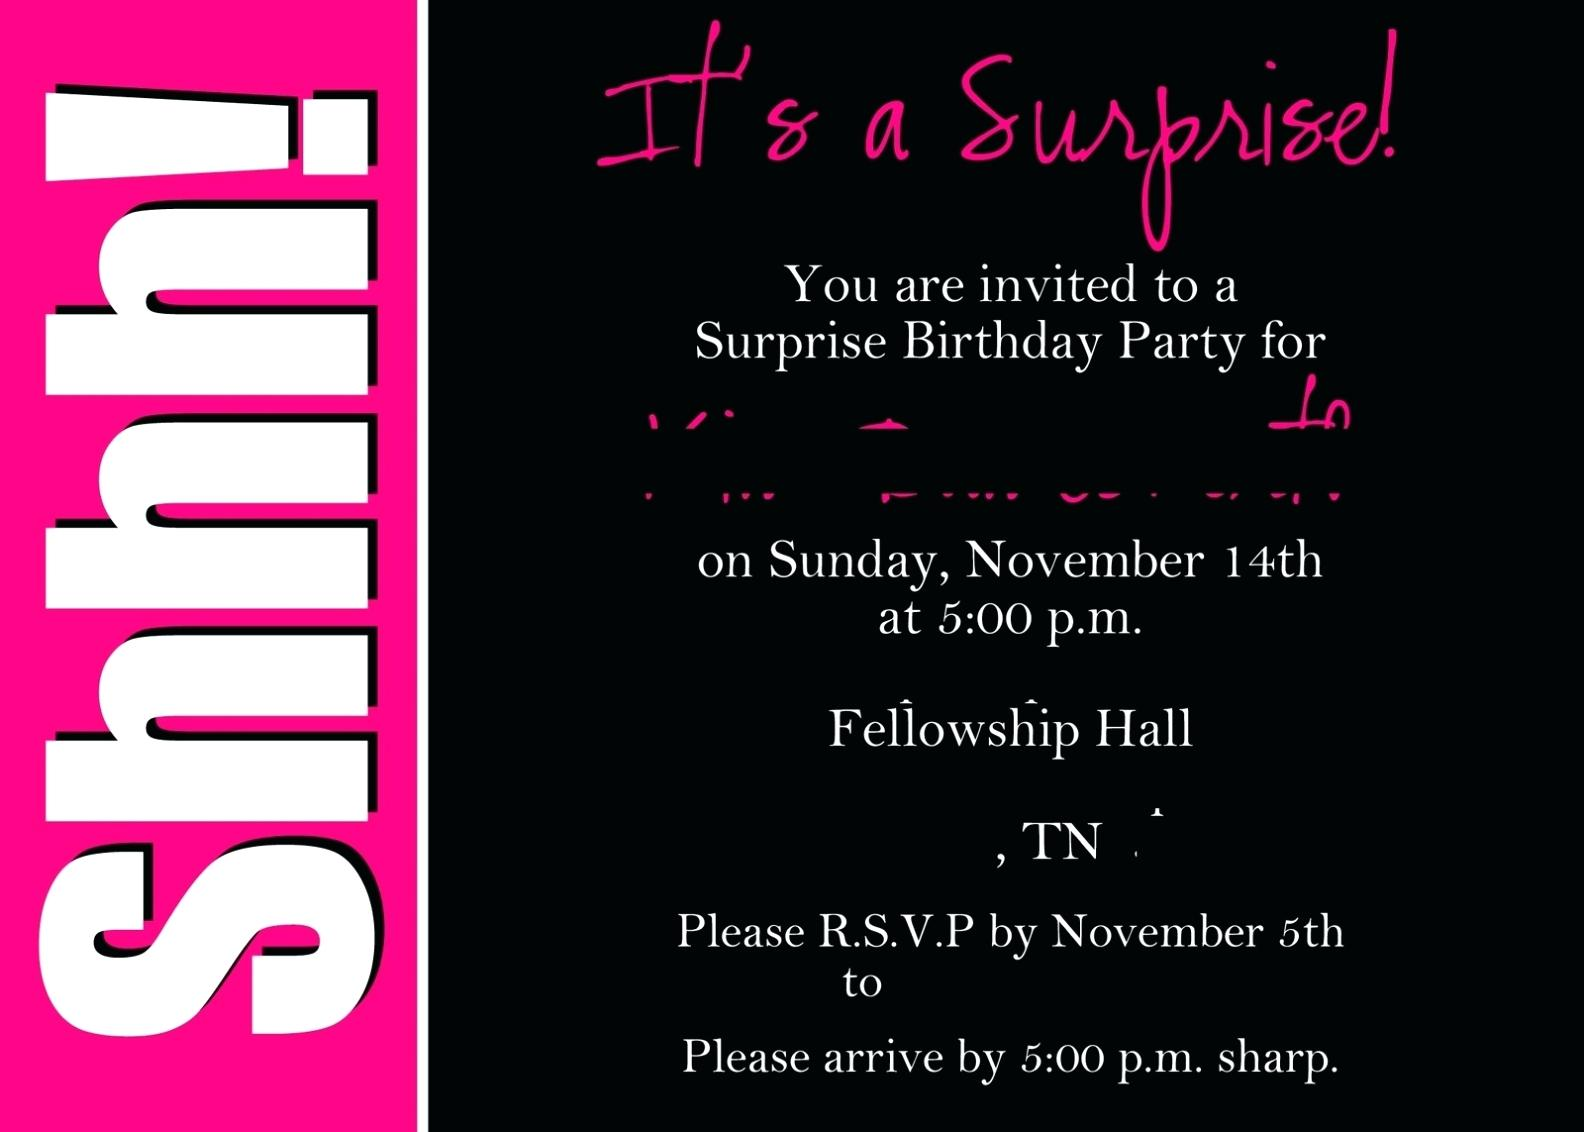 surprise birthday card template ; 50th-birthday-card-template-surprise-invitation-wording-ideas-party-invitations-trends-in-designs